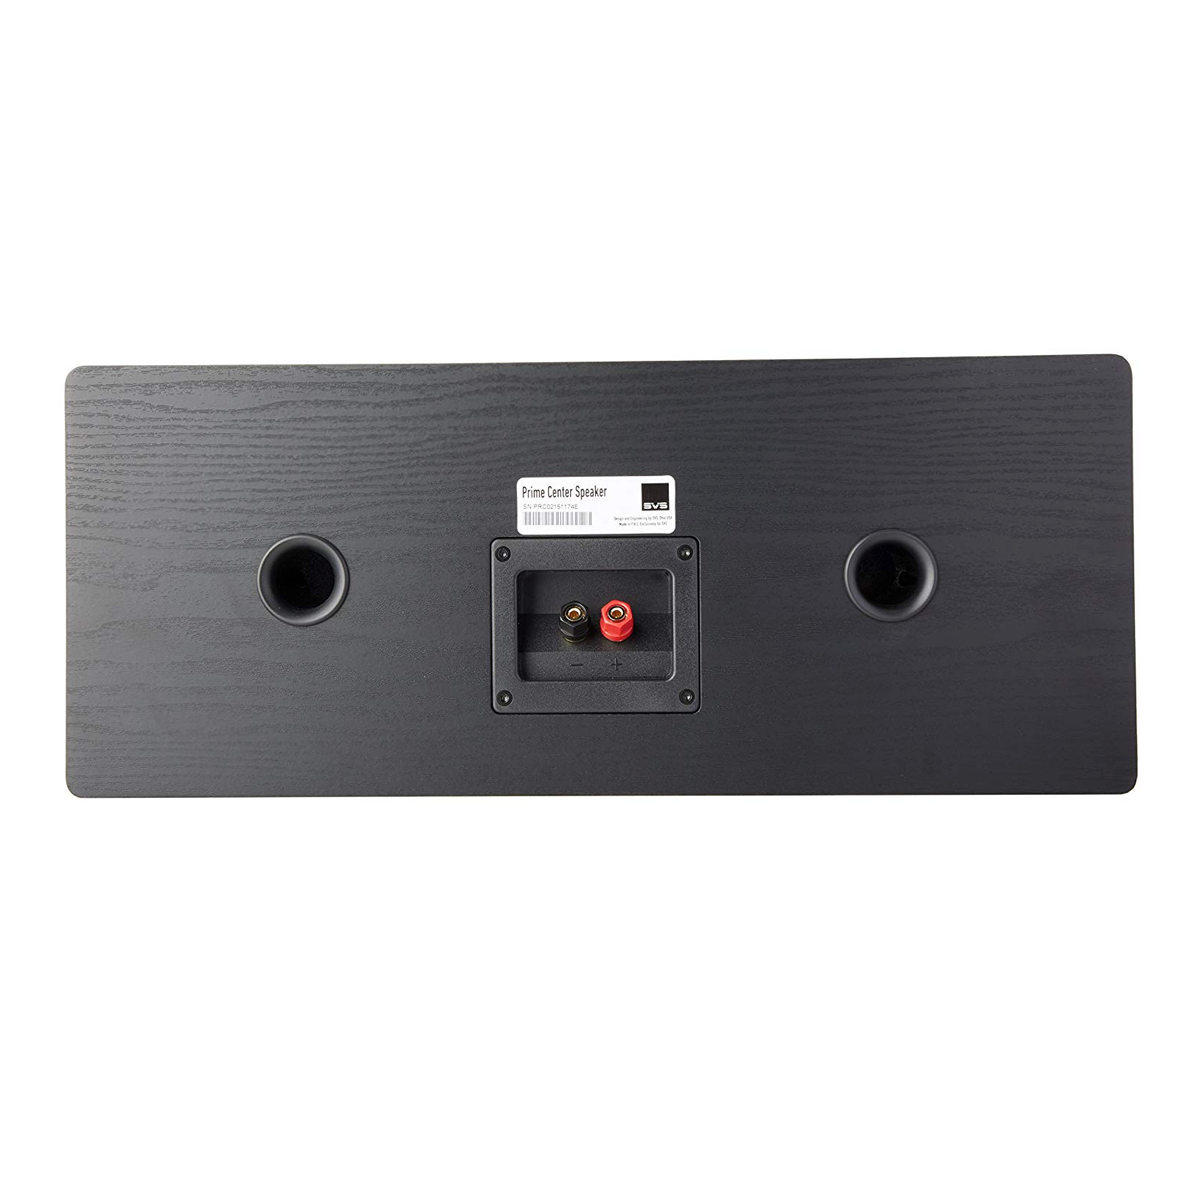 SVS Sound Prime Centre Speaker - Black Ash, SVS Sound, Centre Speaker - AVStore.in